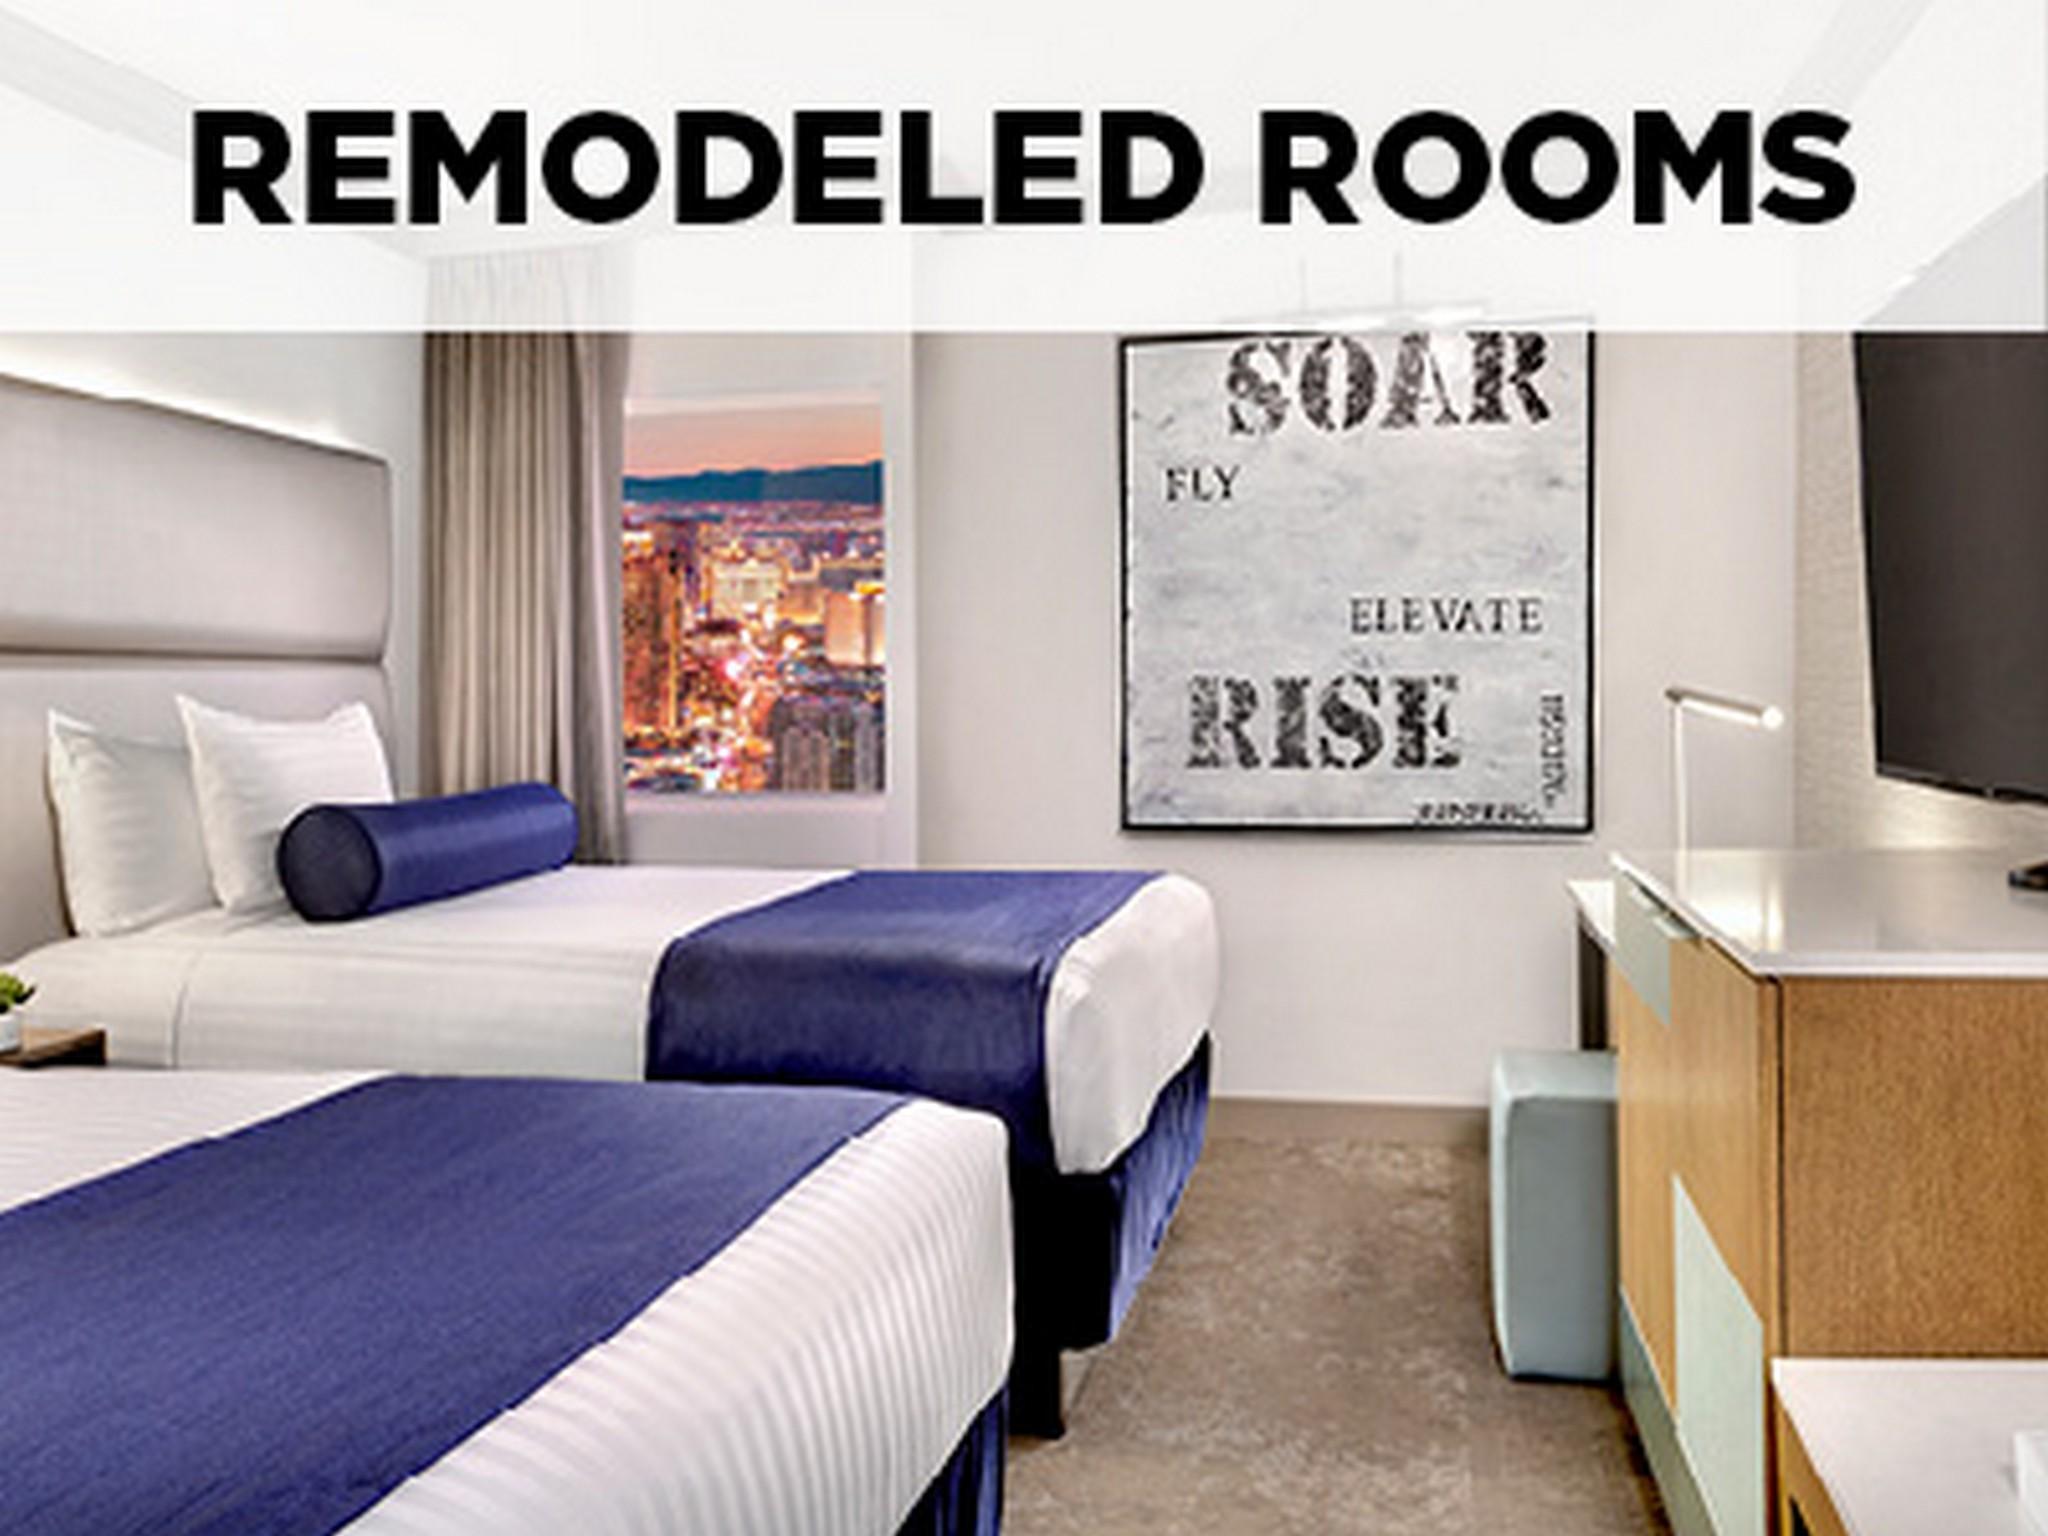 Elevate Room with 2 Queen Beds